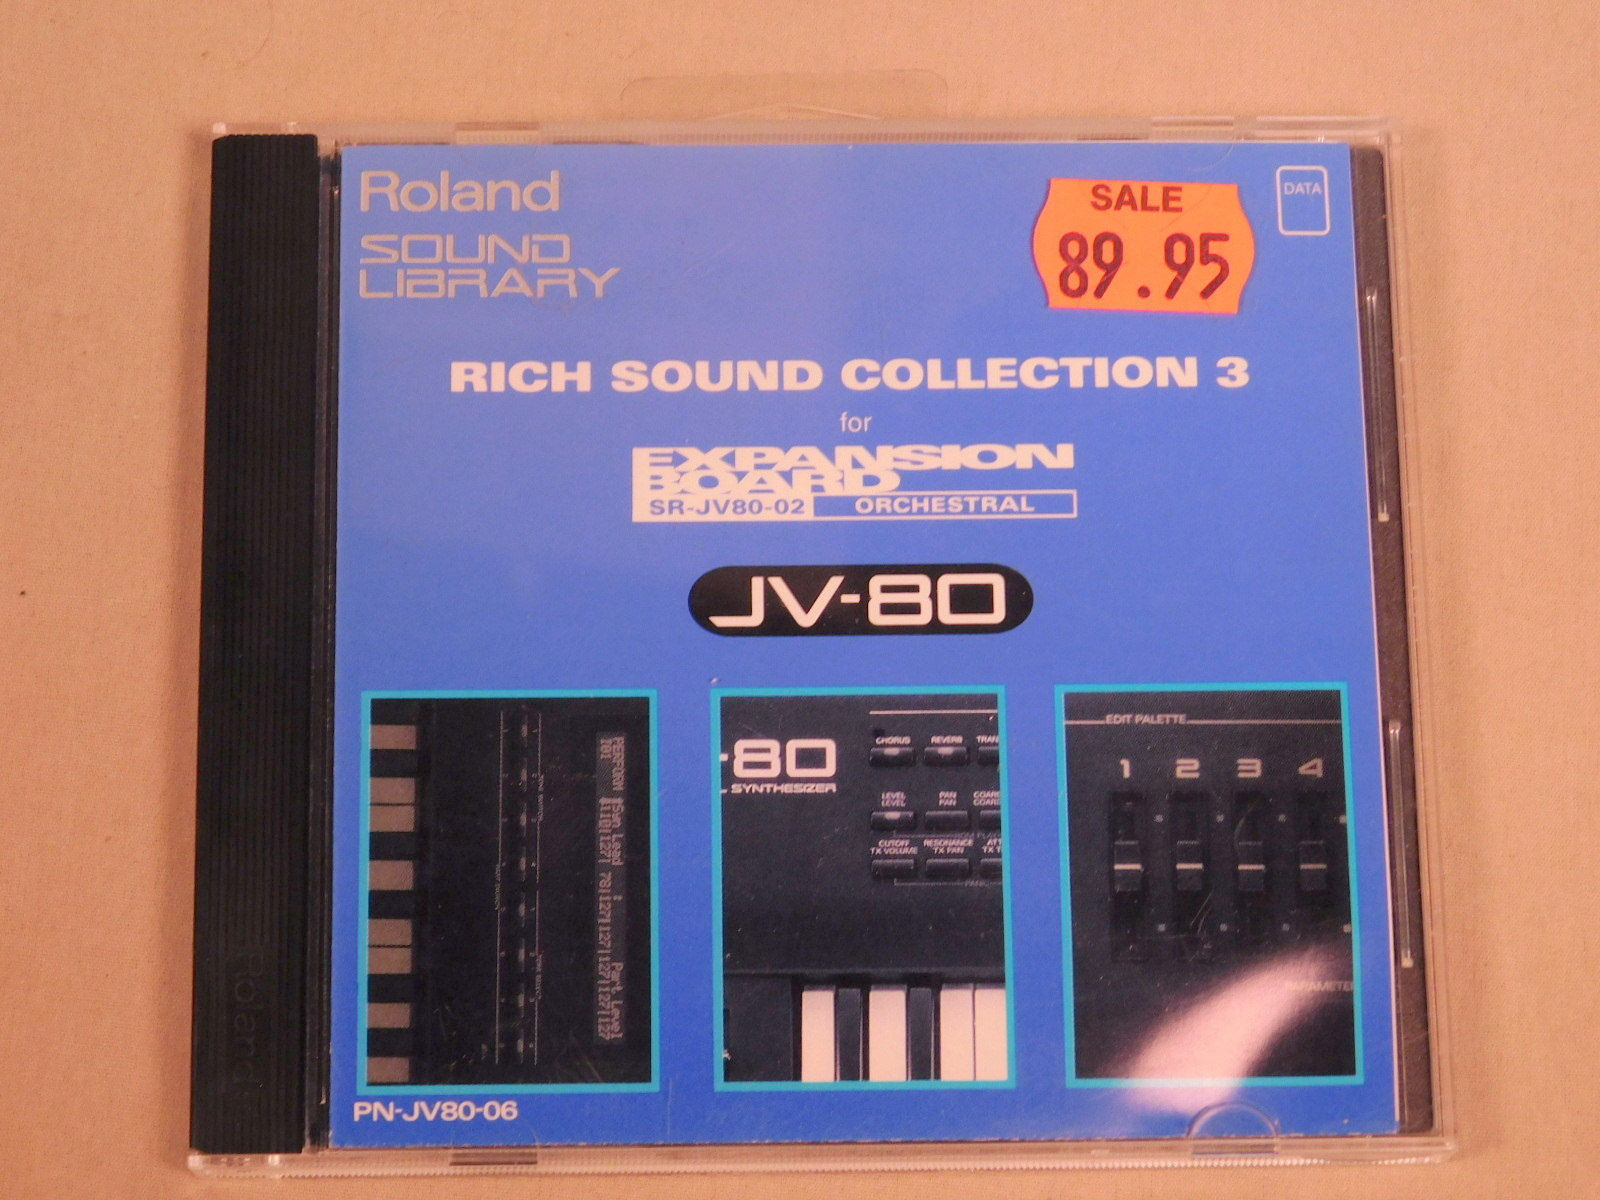 ROLAND SR-JV80-02 RICH SOUND COLLECTION 3 III EXPANSION BOARD FOR JV-80